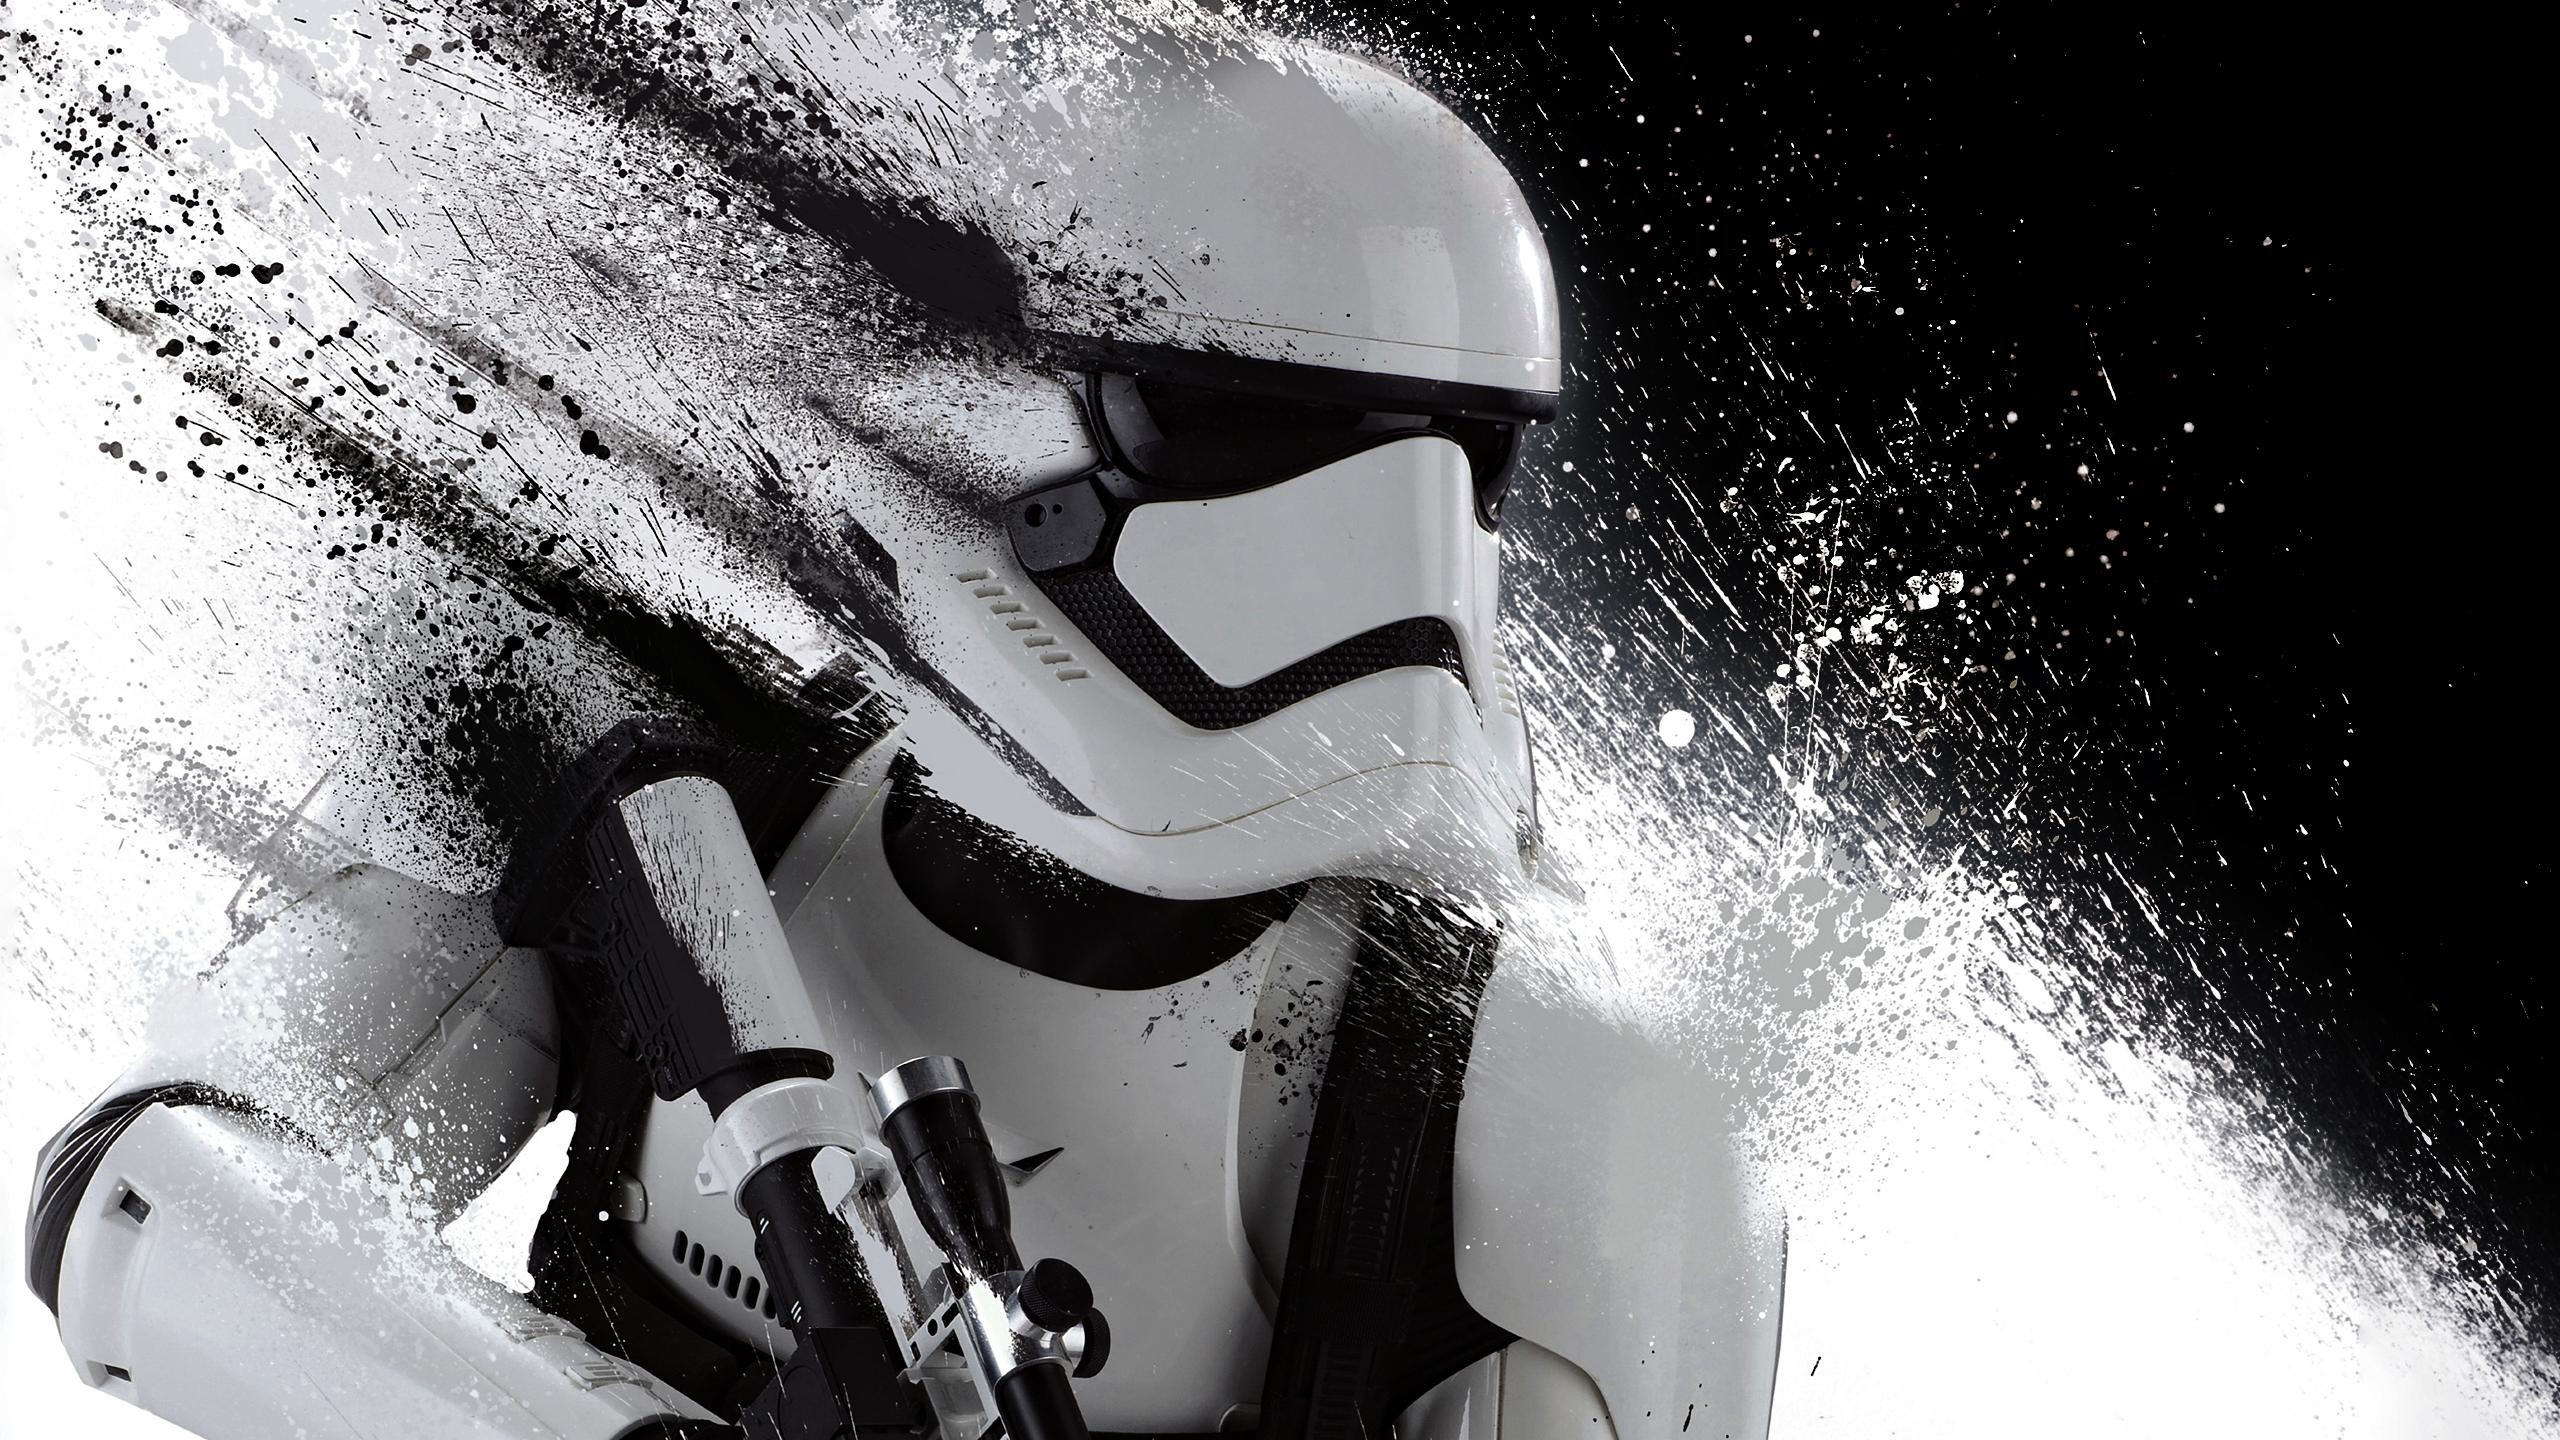 72+ hd stormtrooper wallpapers on wallpaperplay